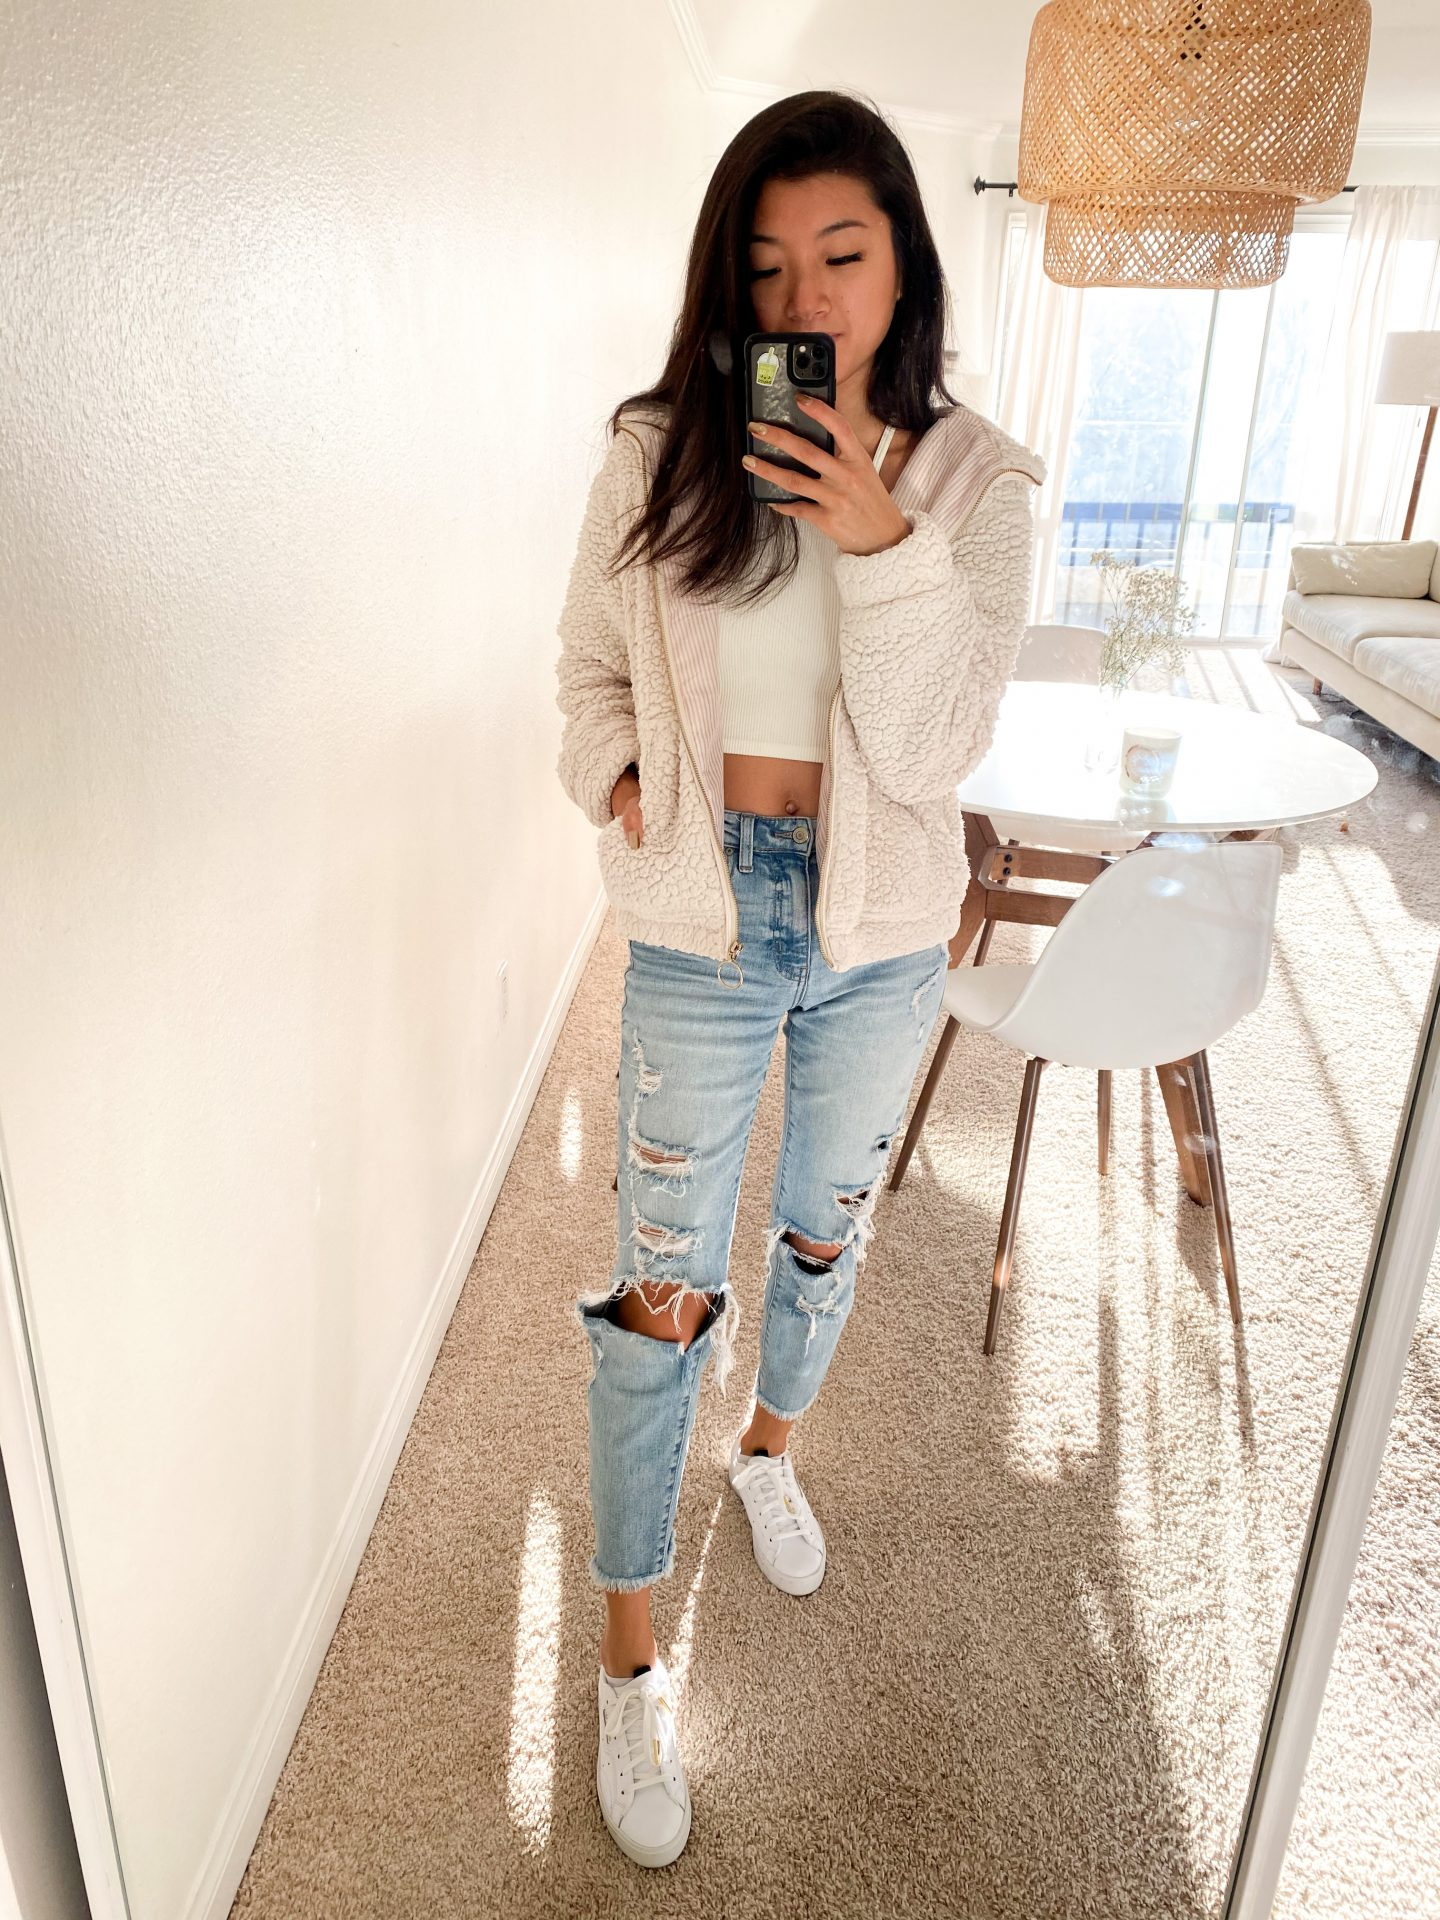 Looking for the perfect Spring fashion trends? Los Angeles My Teacher Got Style is sharing her favorite spring fashion trends HERE!